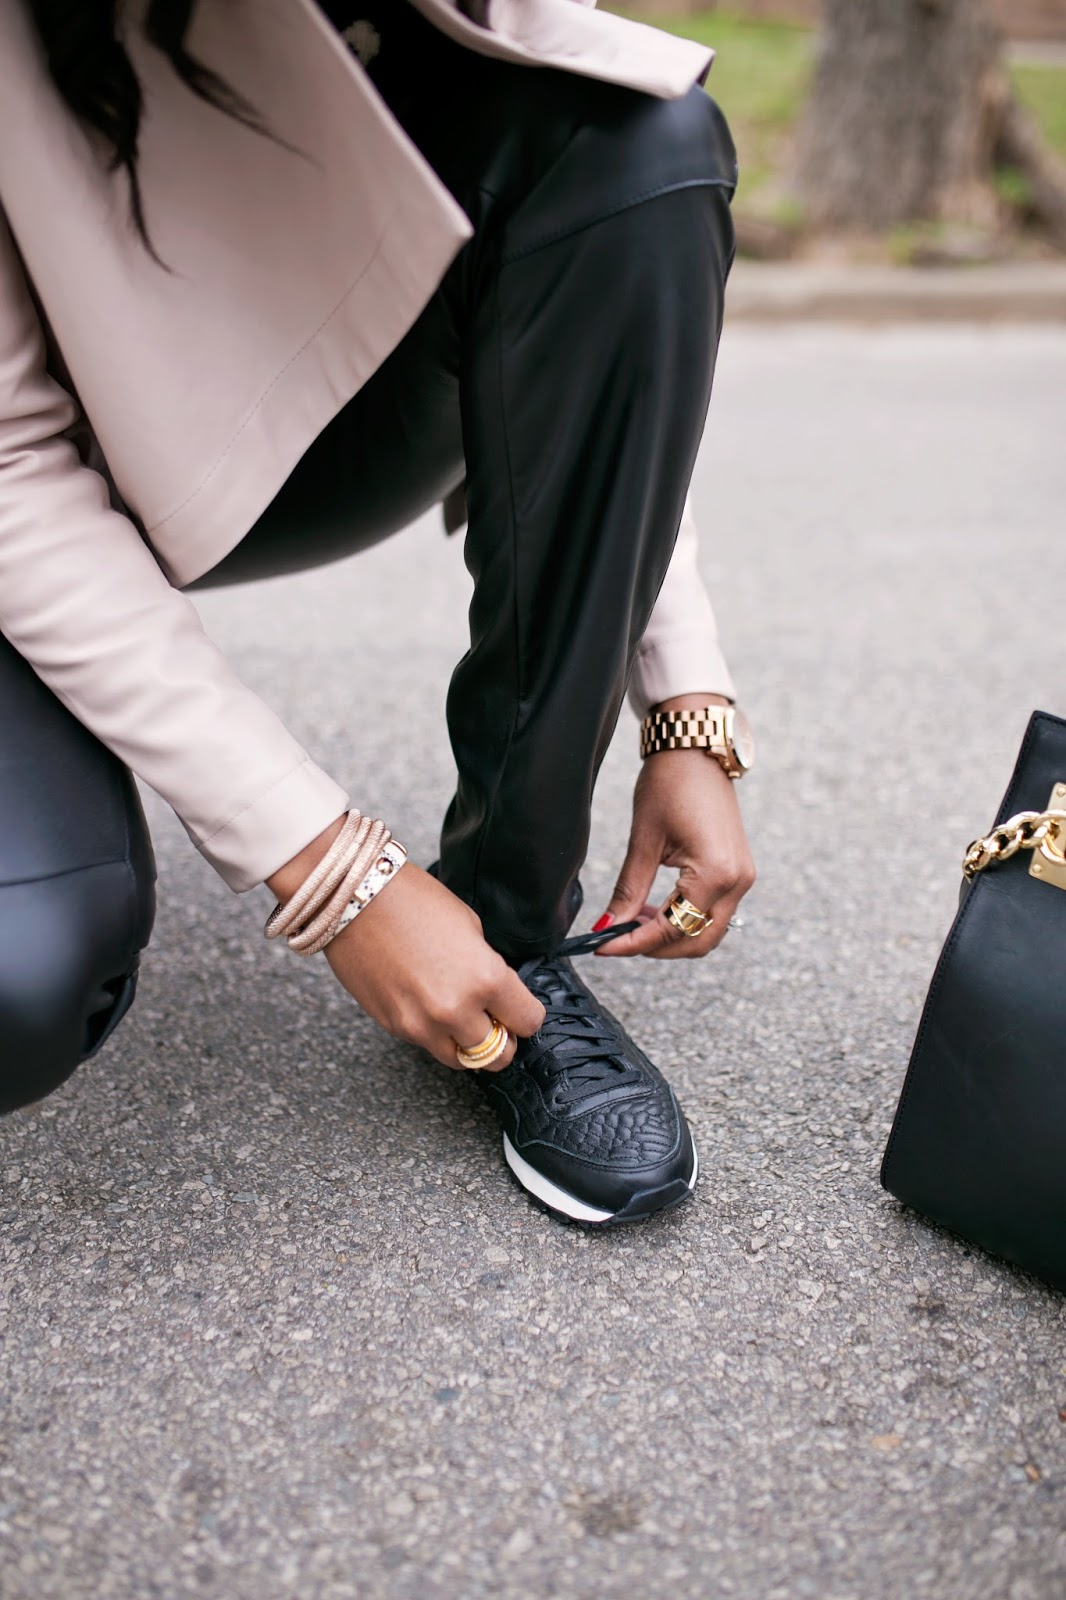 athleisure-fashion blogger- dallas blogger- nike air pegasus rose gold- rose gold shoes- athletic shoes- stylish athletic shoes- stylish sneakers- leather leggings- blush pink leather jacket- holy chic top- brown girl blogger- detroit blogger